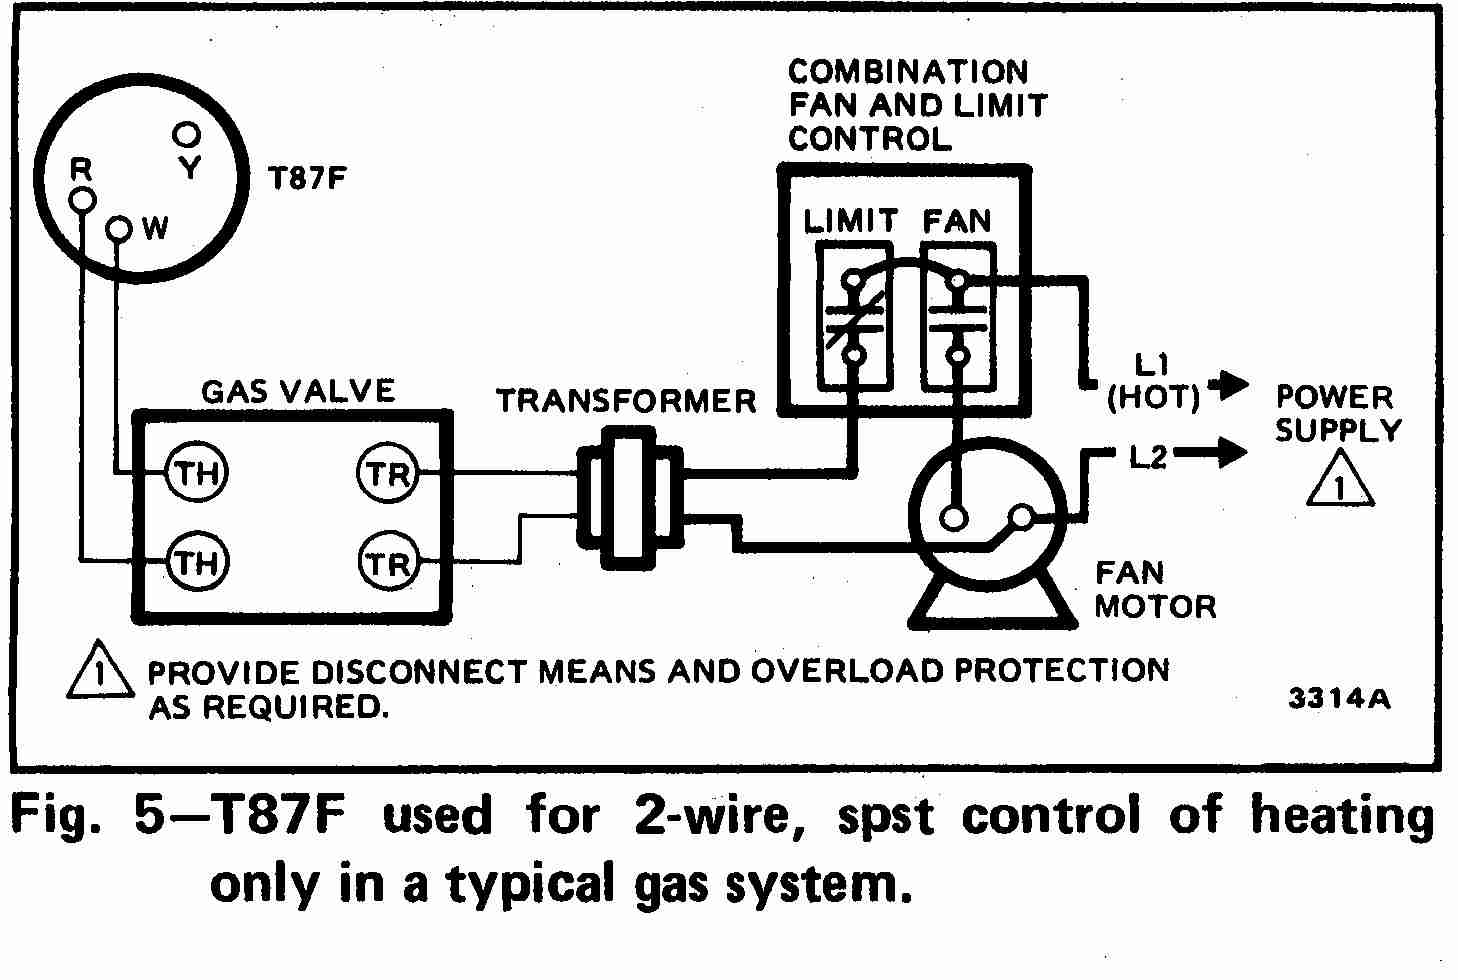 Zone Valve Wiring Installation Instructions Guide To Heating Wood Stove Blower Motors On Motor Diagram Flair 2 Wire Thermosat